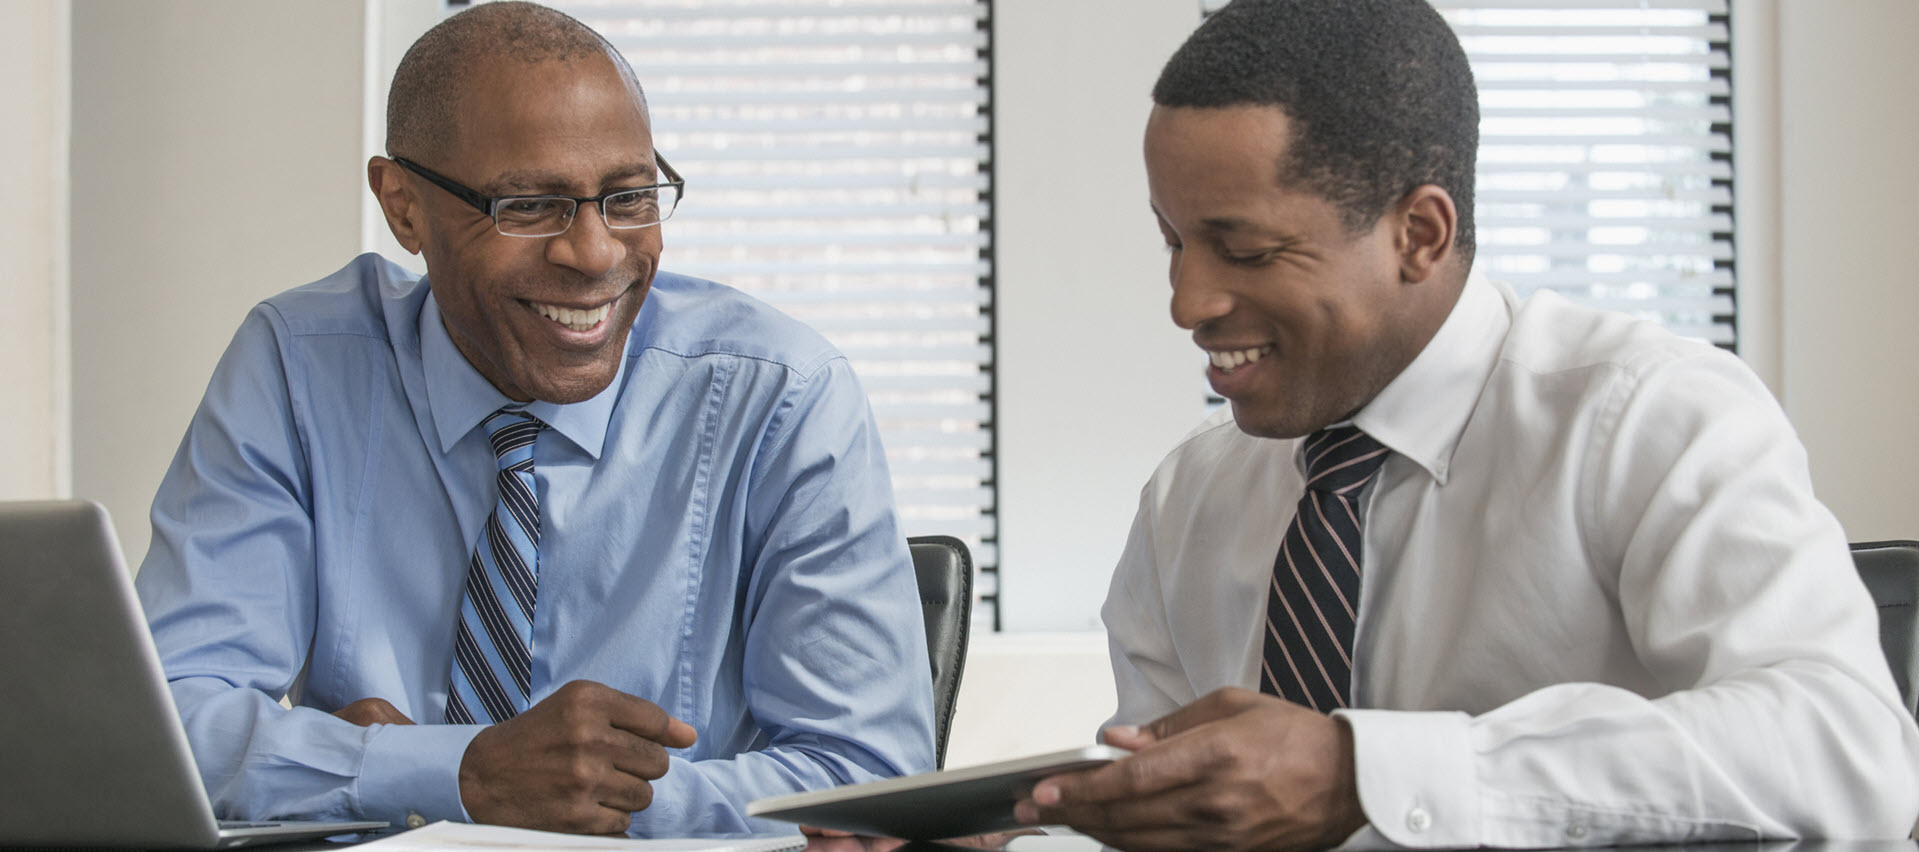 Two men meeting in an office reviewing data